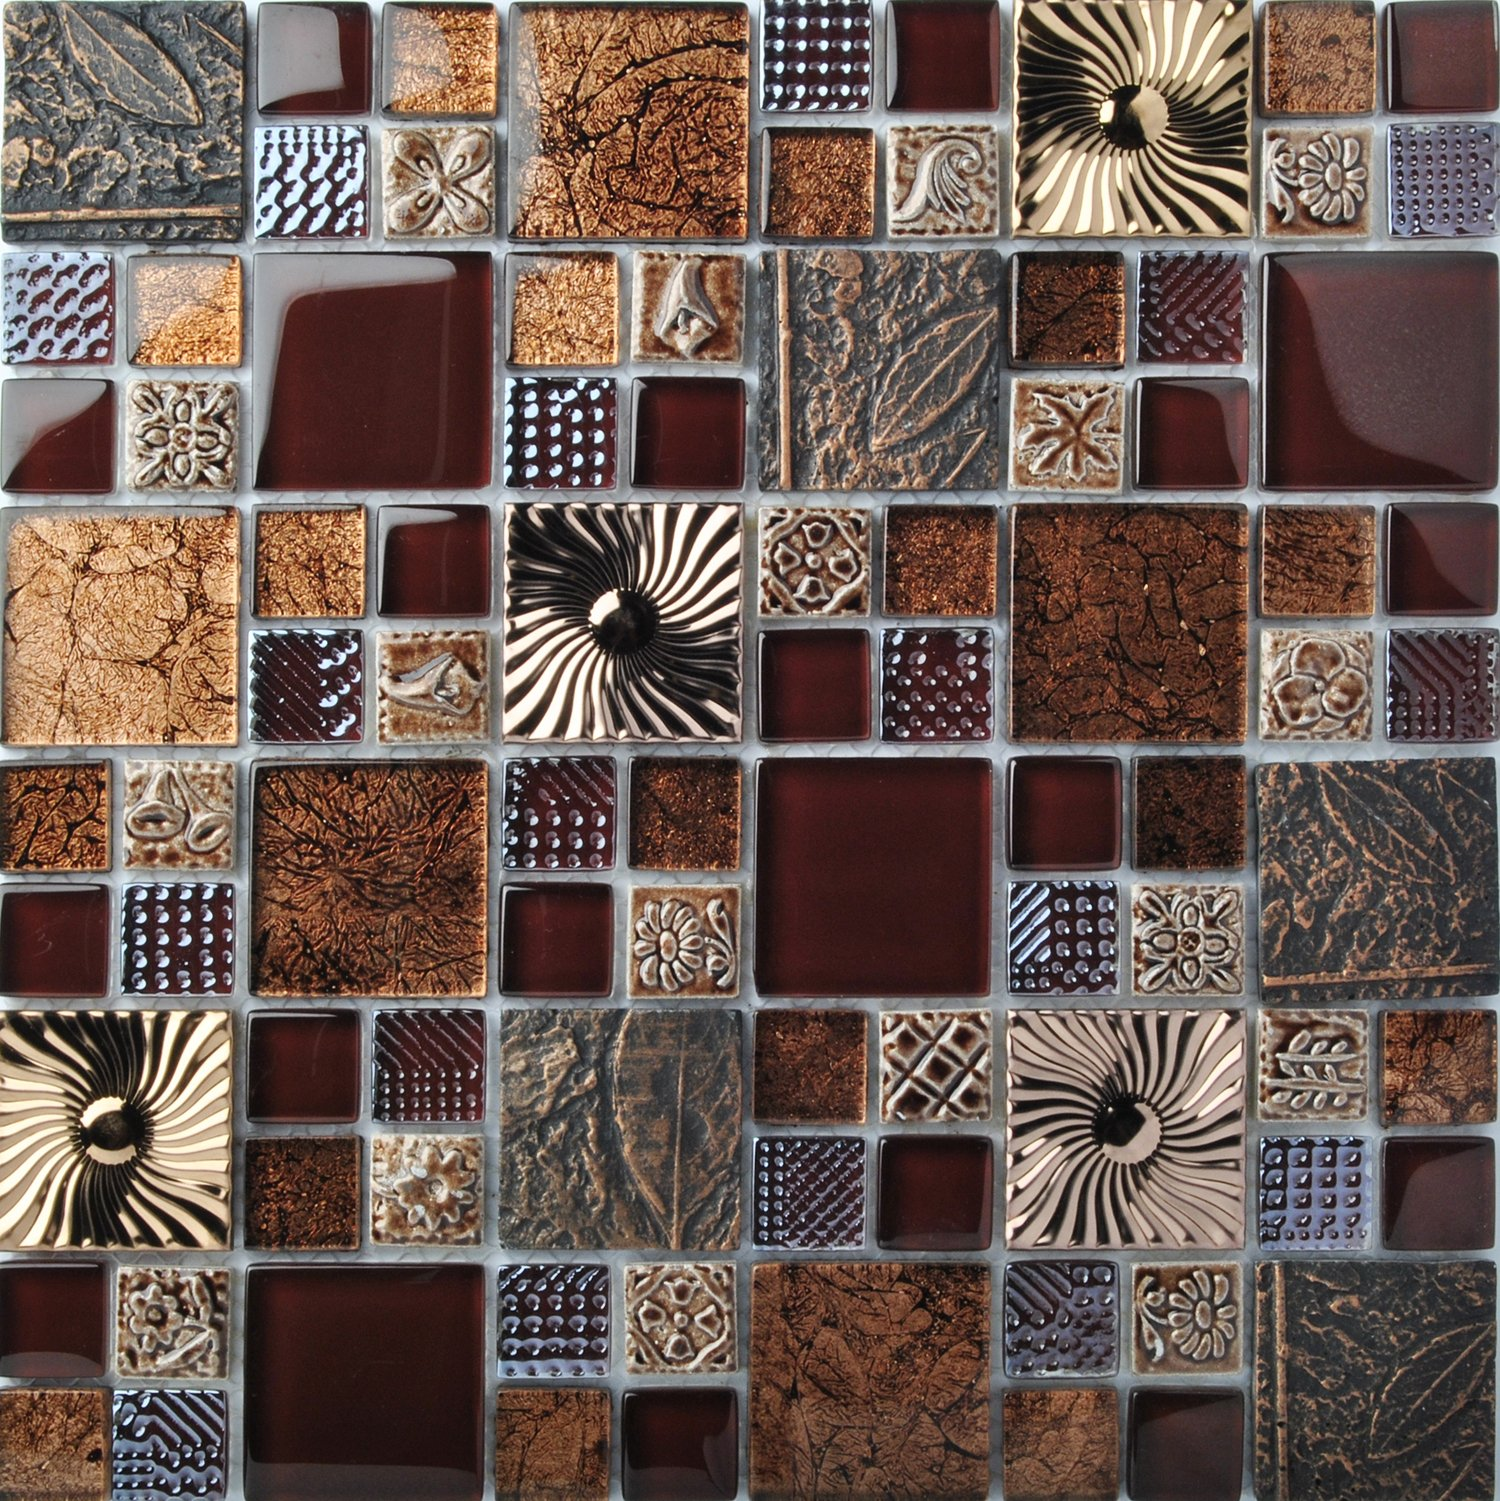 Special Carving Mosaic Art Accent Tile Red Brown Color Glass Wall Backsplash Tiles Rose Gold Metal Kitchen Bath Walls Decor TSTFLY16 (5 Square Feet) by BLUJELLYFISH